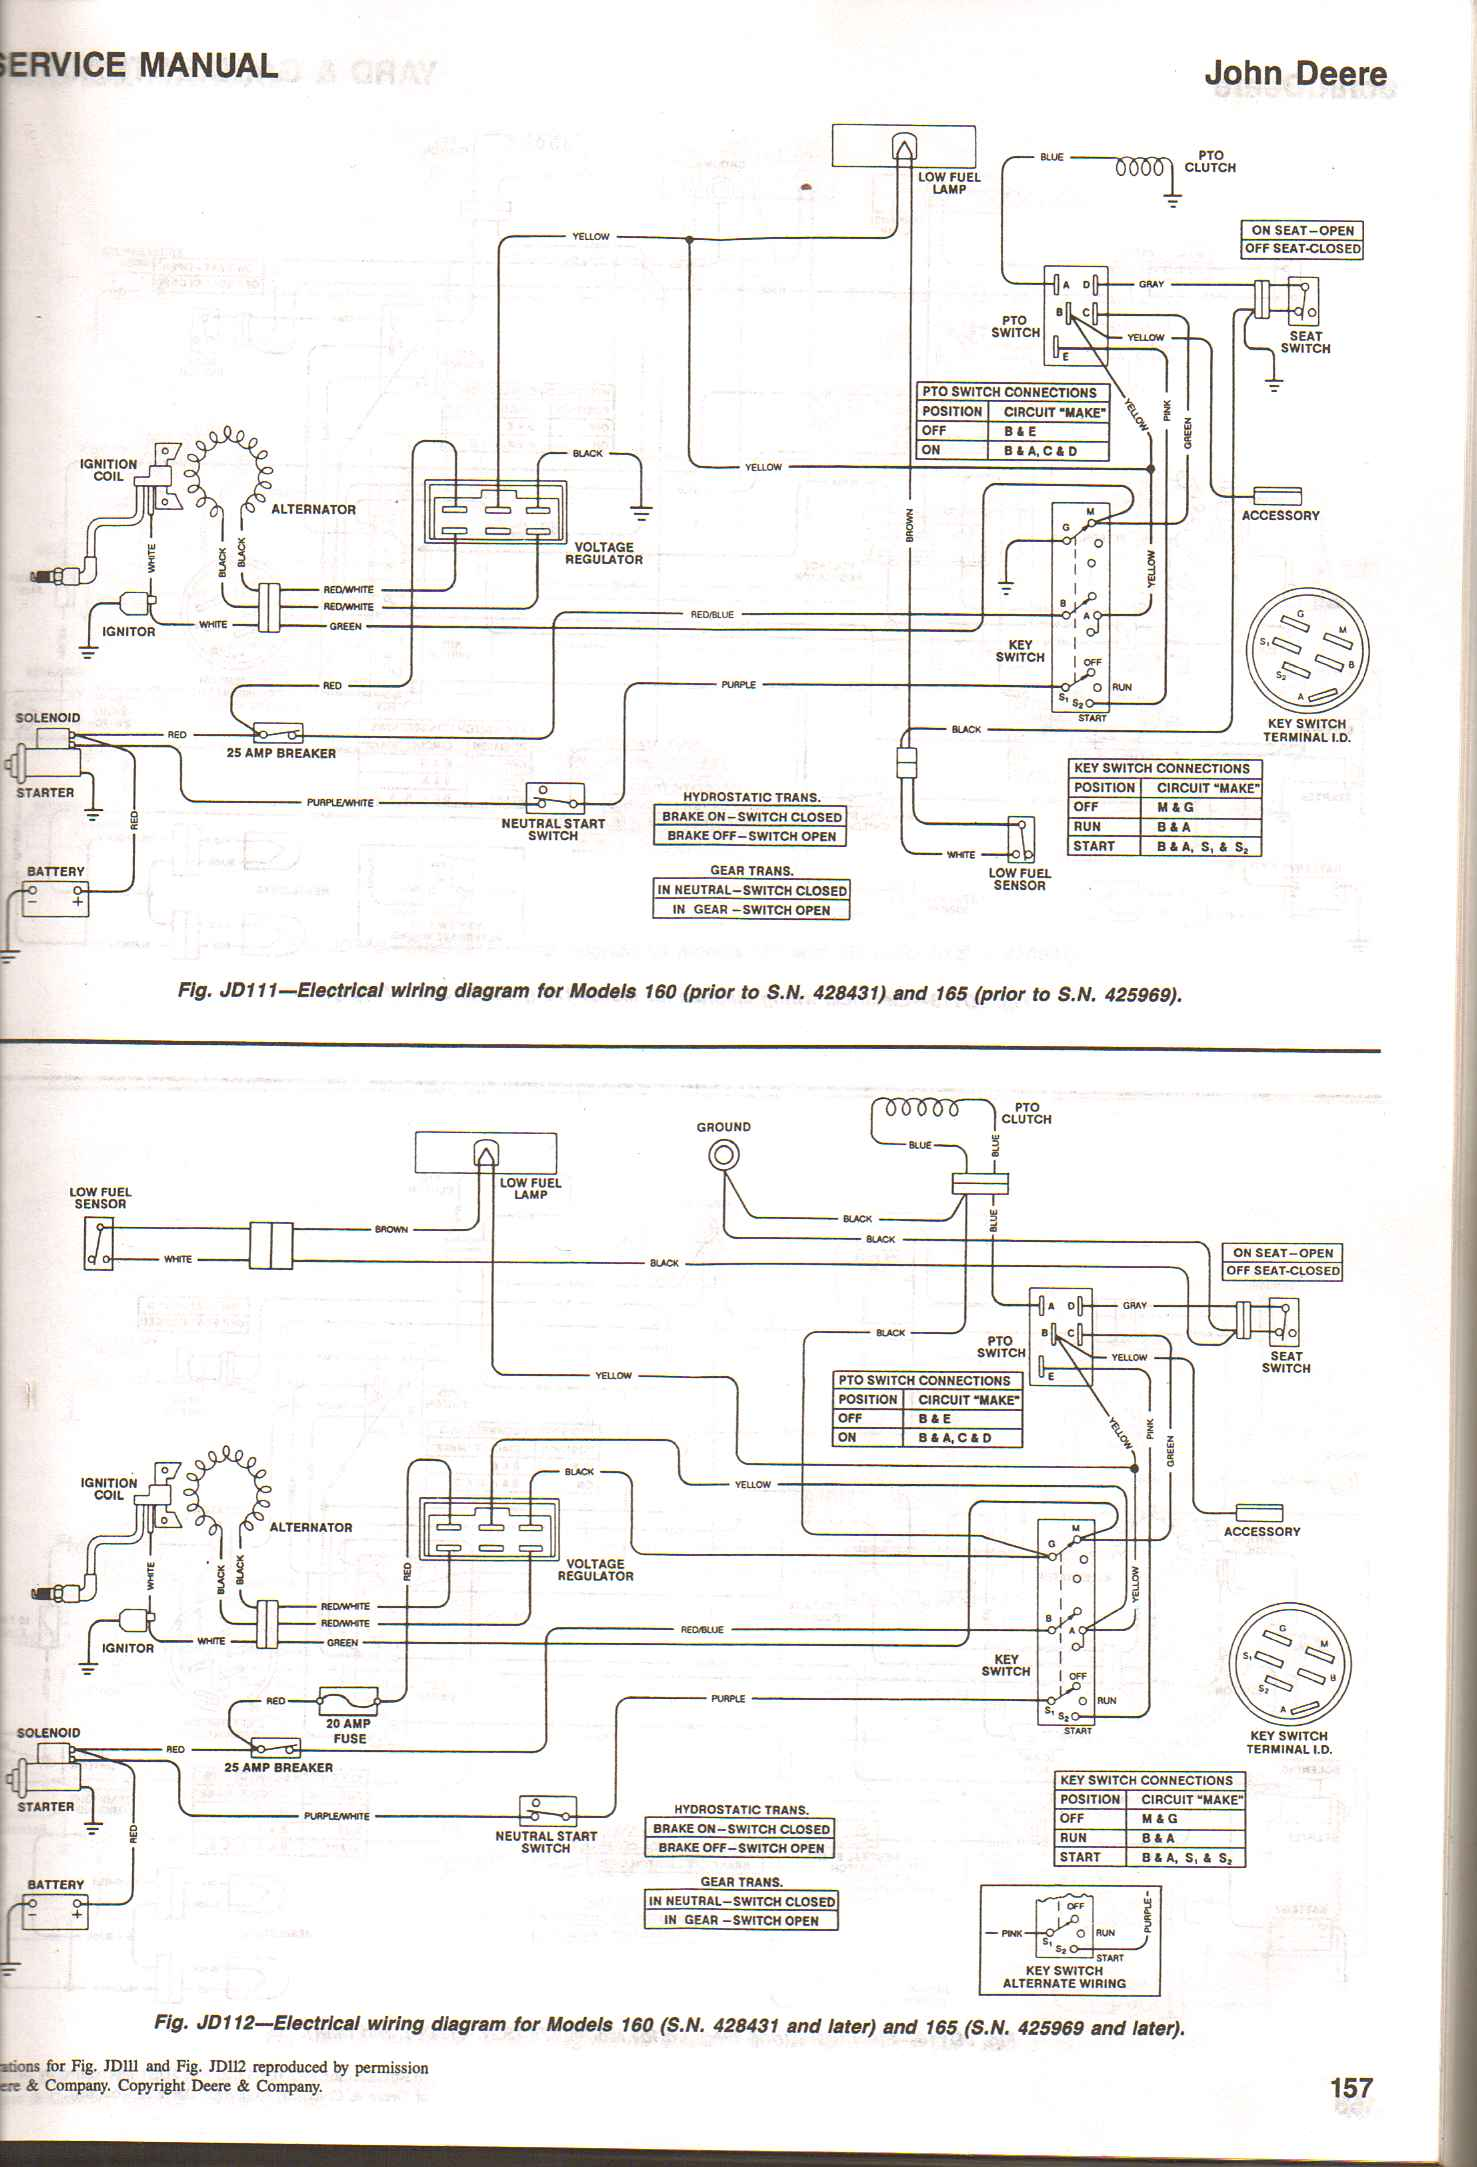 john deere stx38 pto wiring diagram john engine image for john deere stx38 pto wiring diagram john engine image for user john deere tractor also